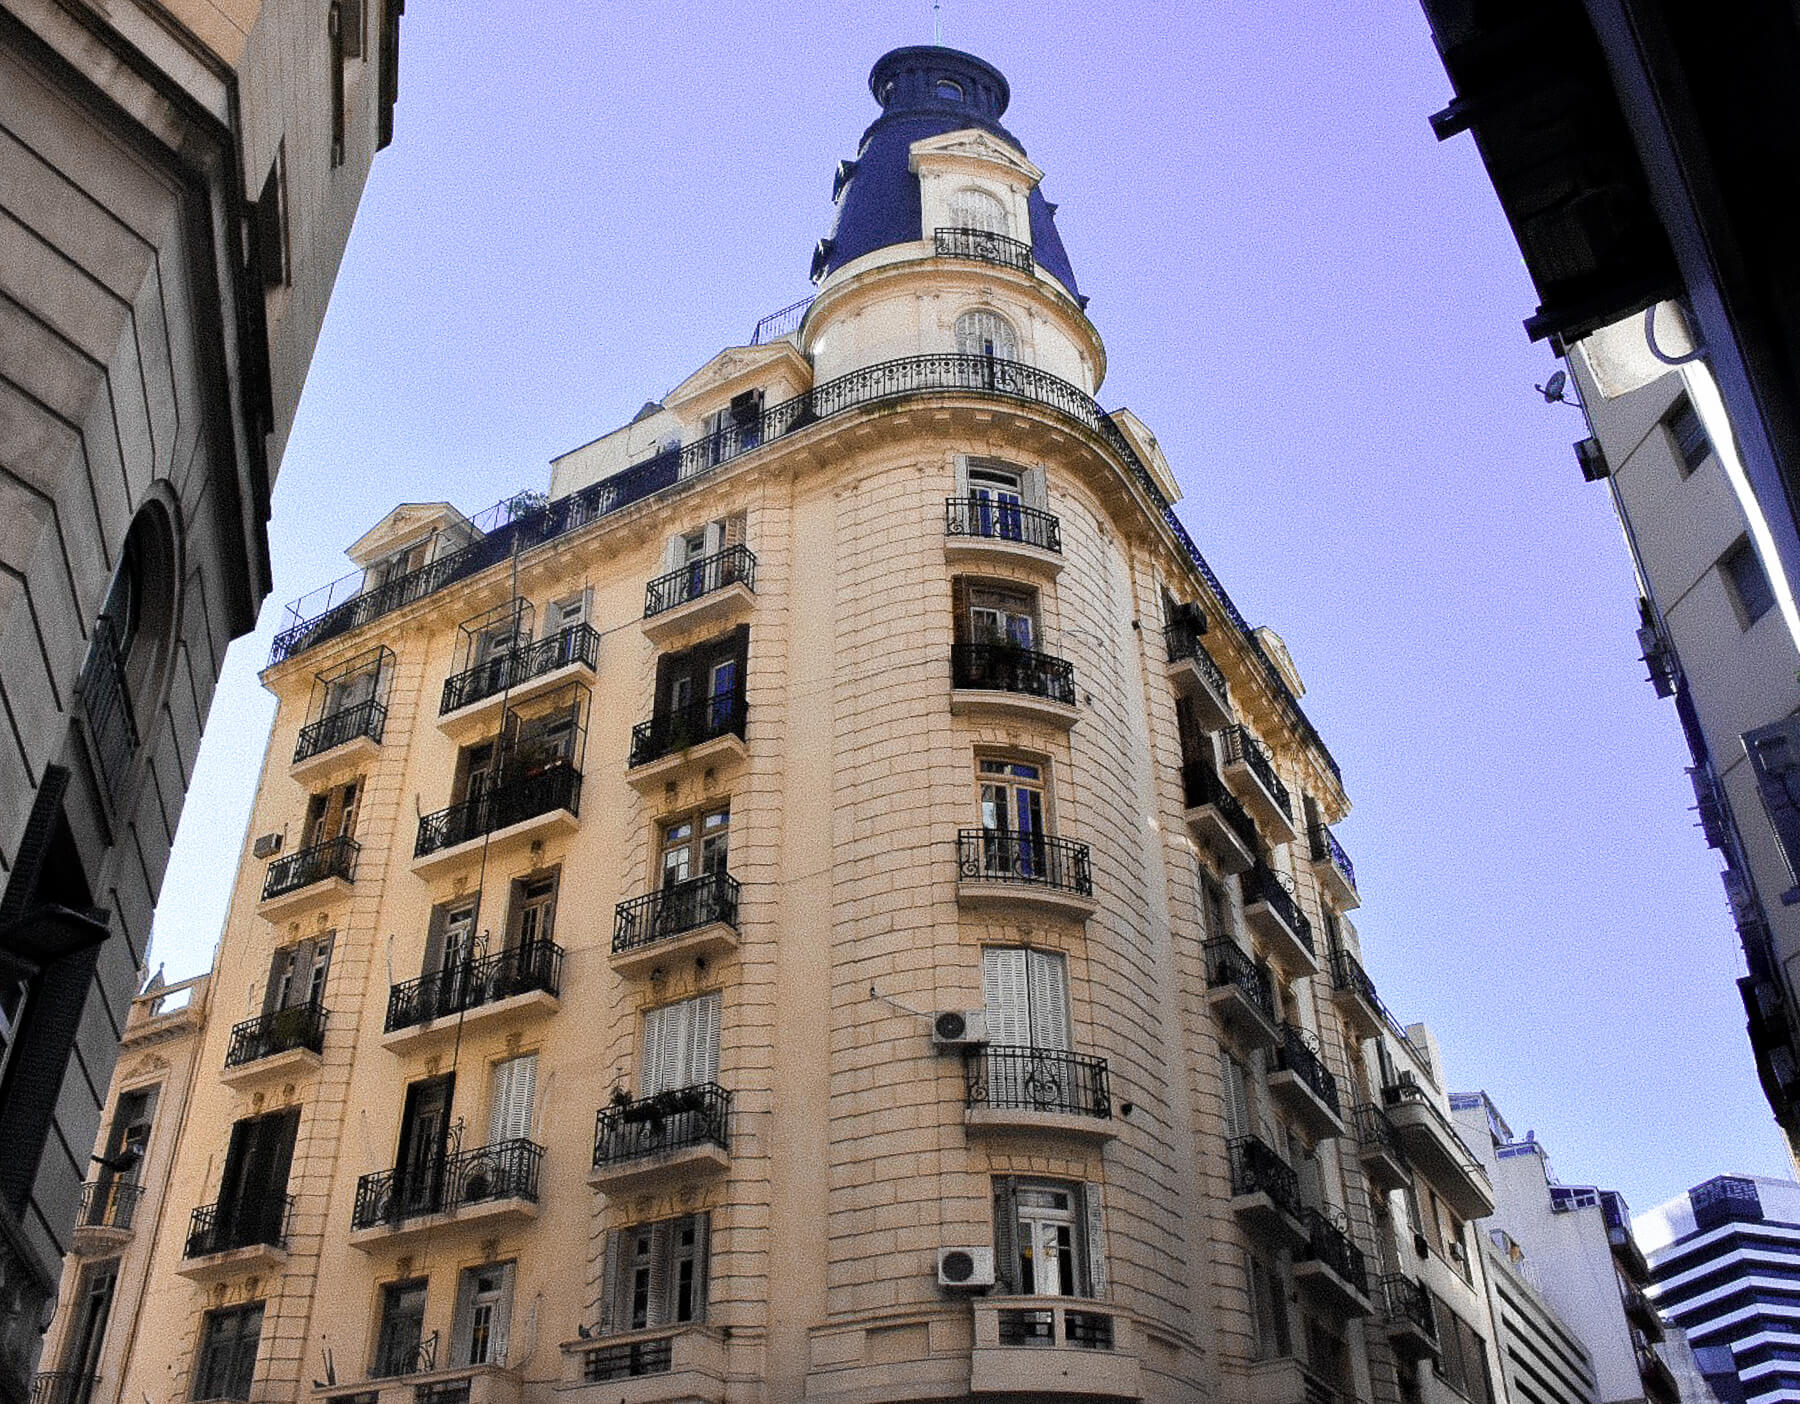 Looking up at the architecture of Buenos Aires